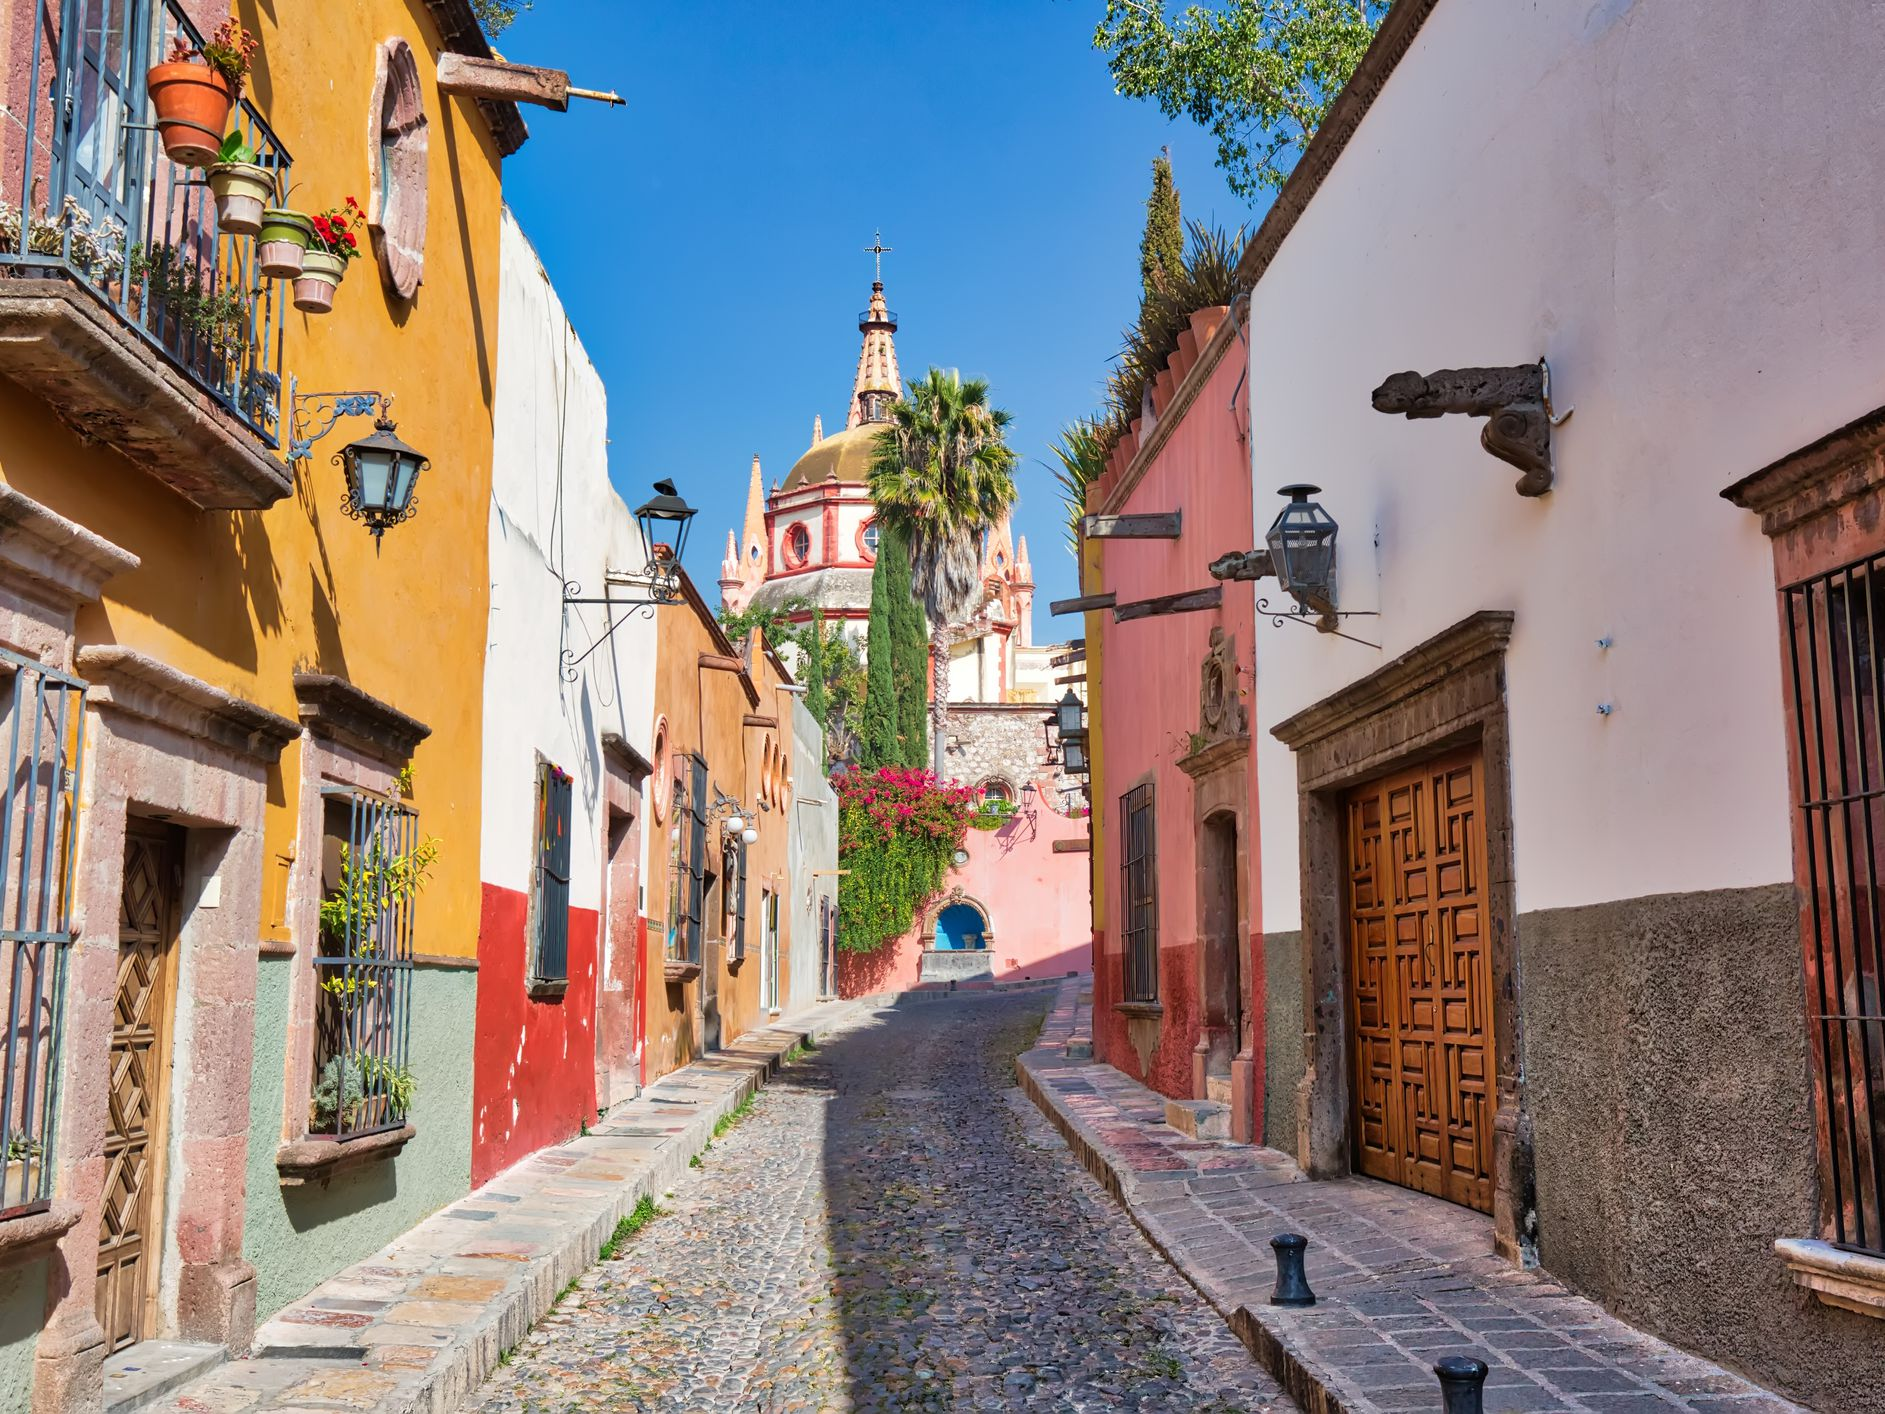 Moving to Mexico: How Safe Is It to Live in Mexico?